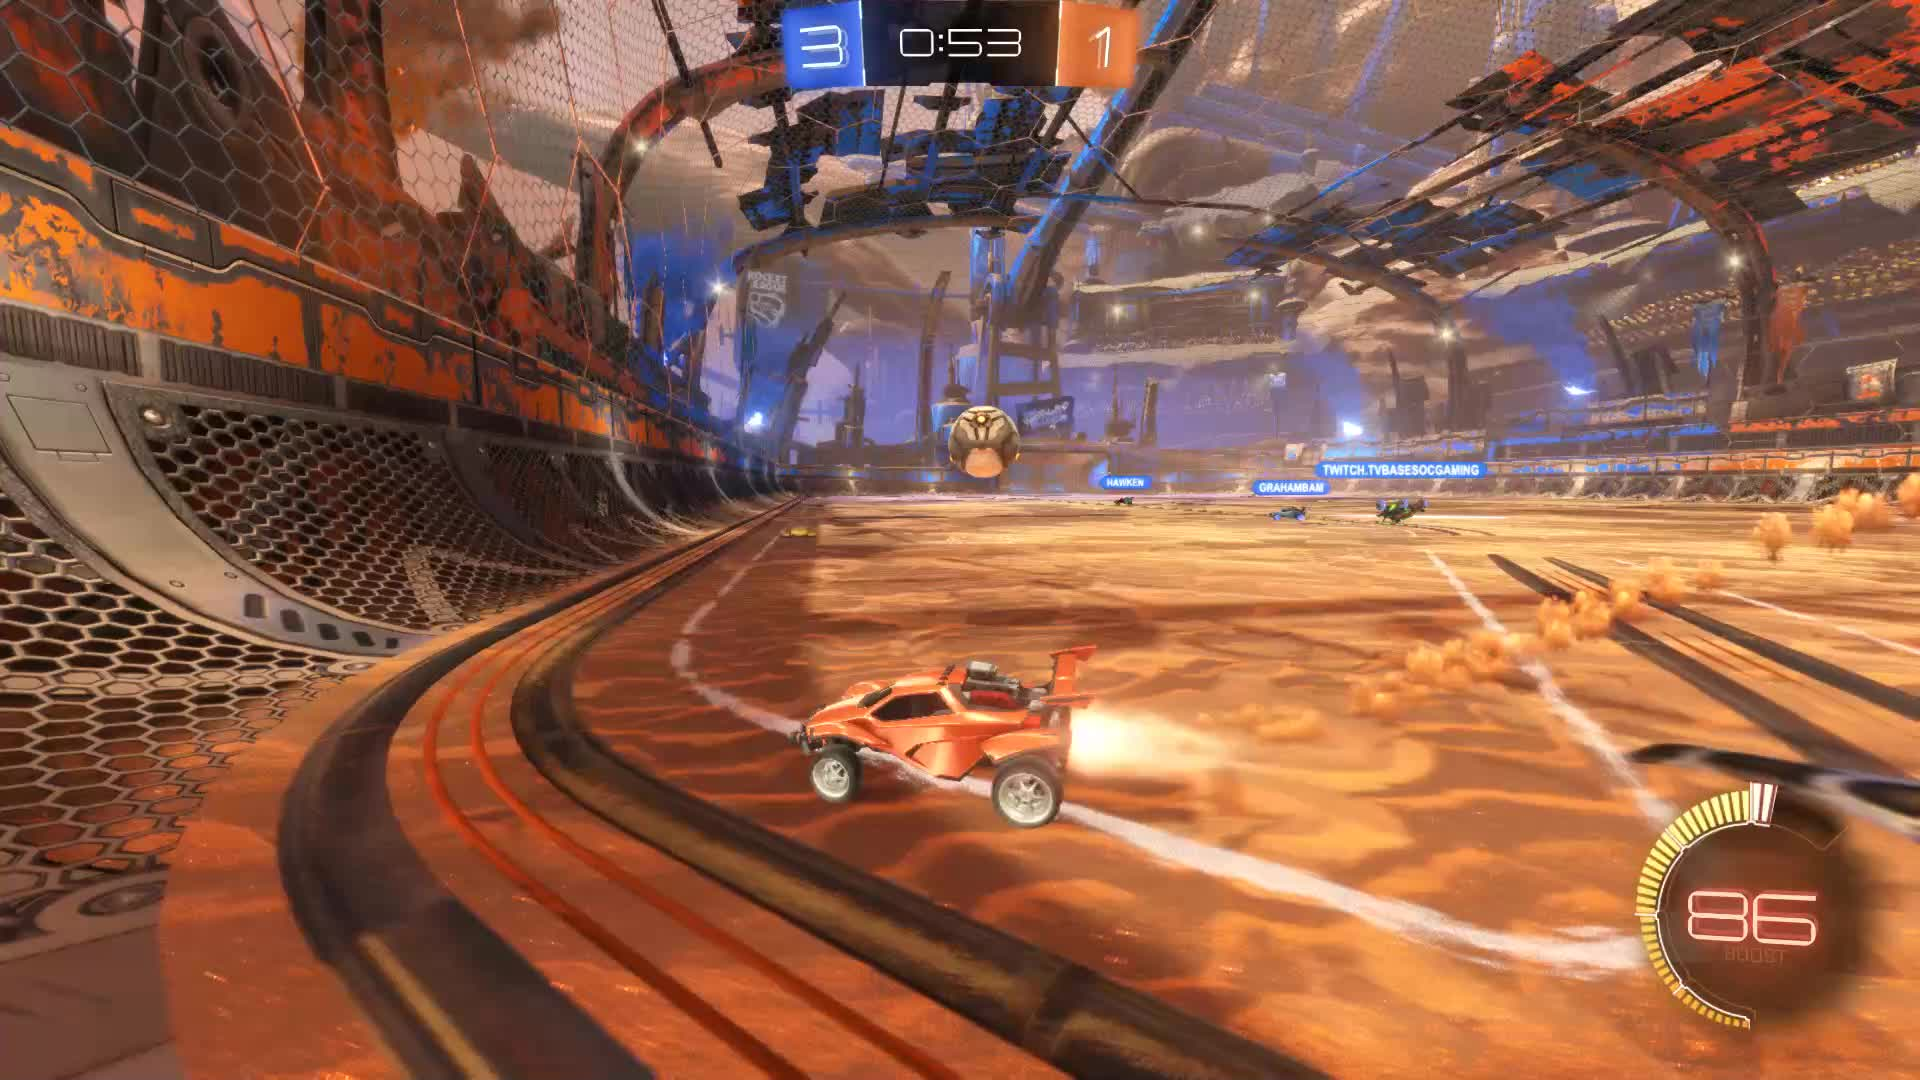 Assist, Gif Your Game, GifYourGame, Ketchup = Bipolar, Rocket League, RocketLeague, Assist 4: Ketchup = Bipolar GIFs